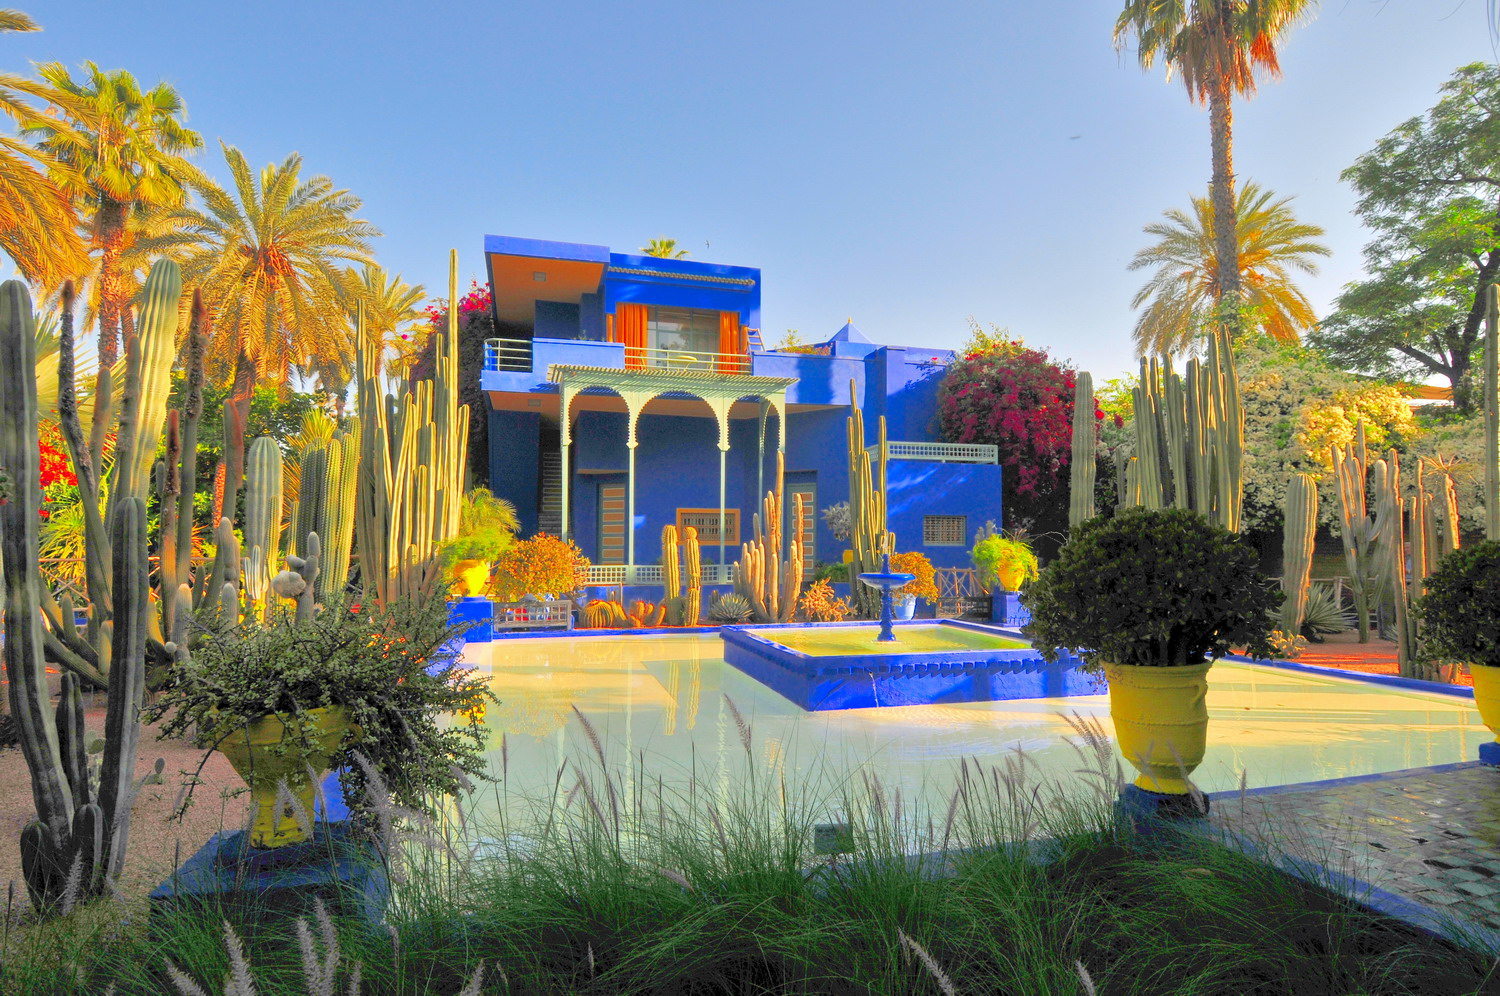 Jardin Ysl Marrakech Of Majorelle Gardens The Exotic Park That Inspired Yves